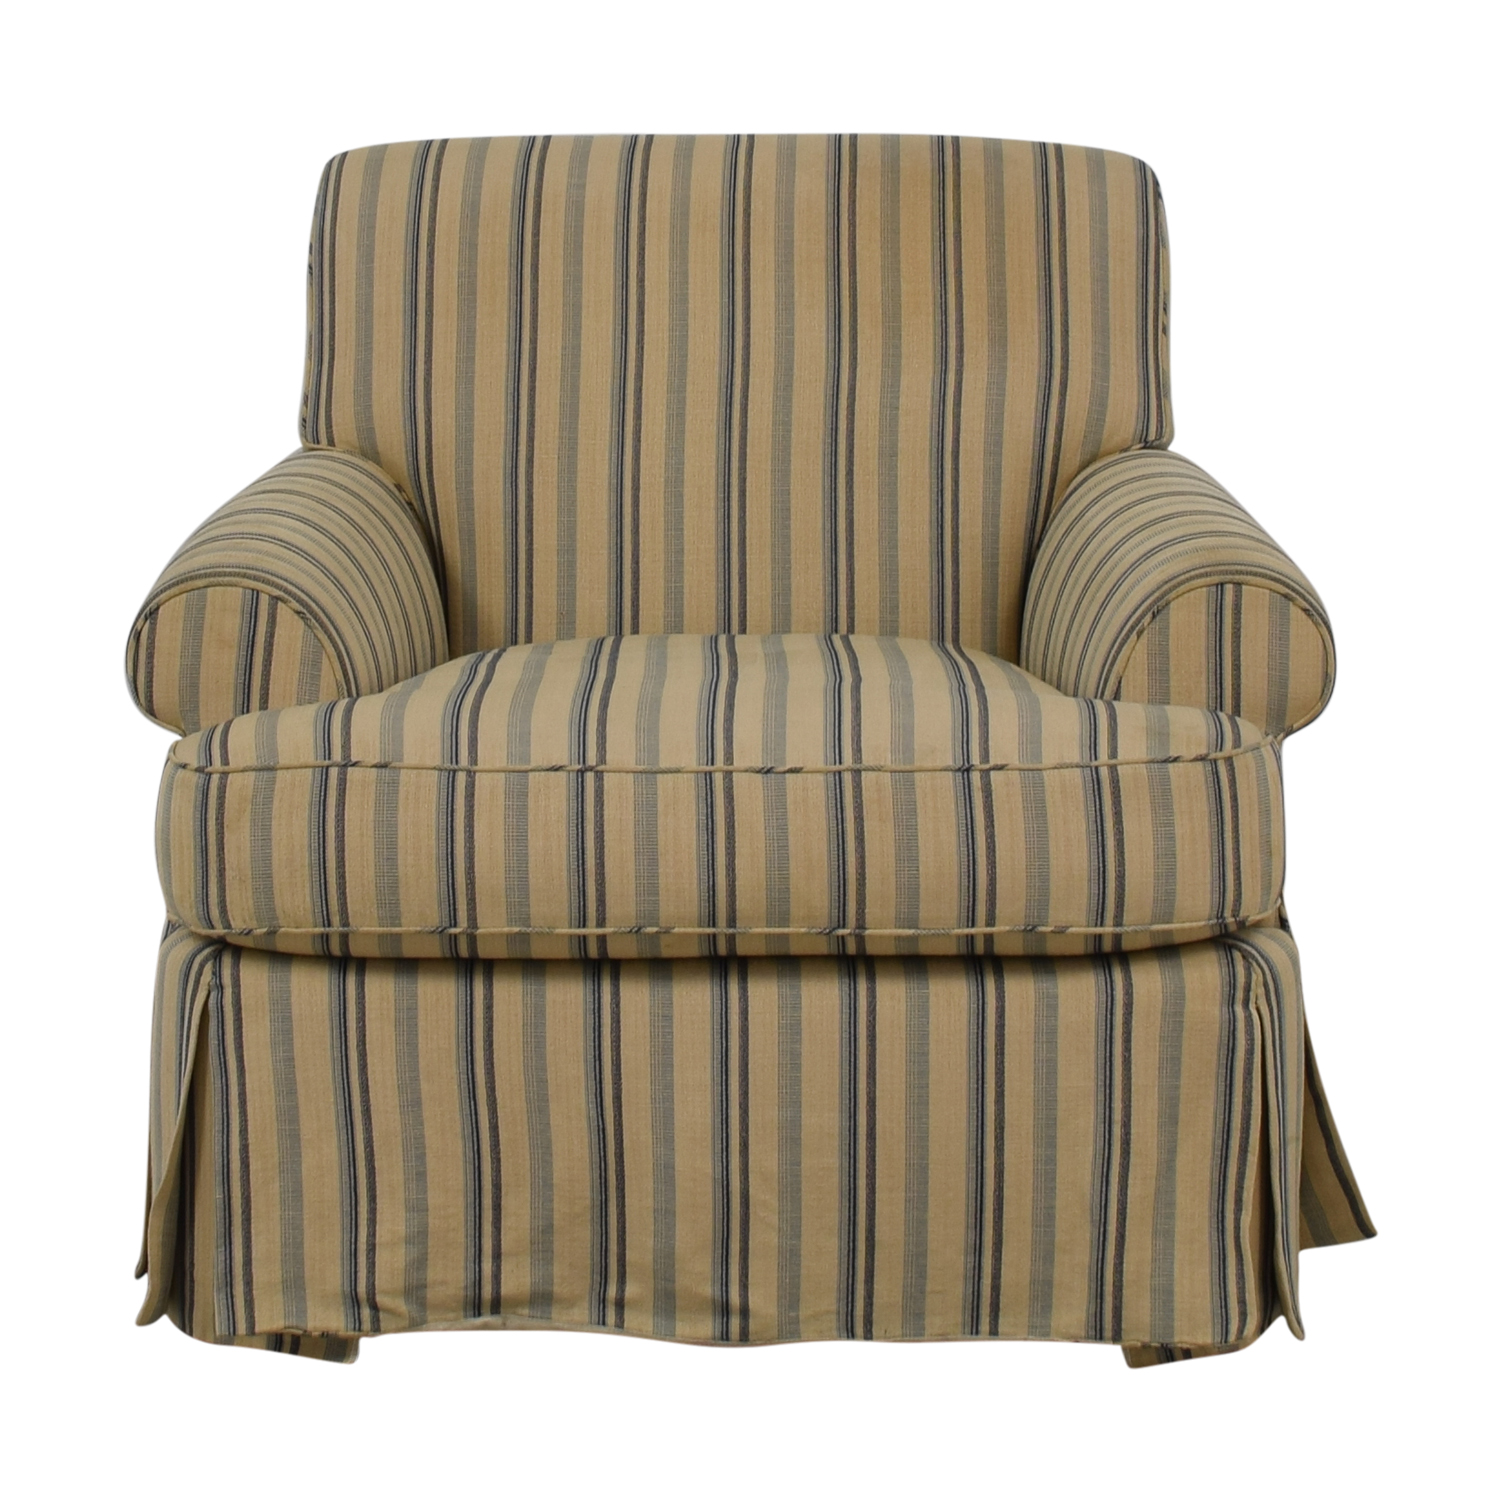 Furniture Masters Furniture Masters Stripped Accent Chair nyc